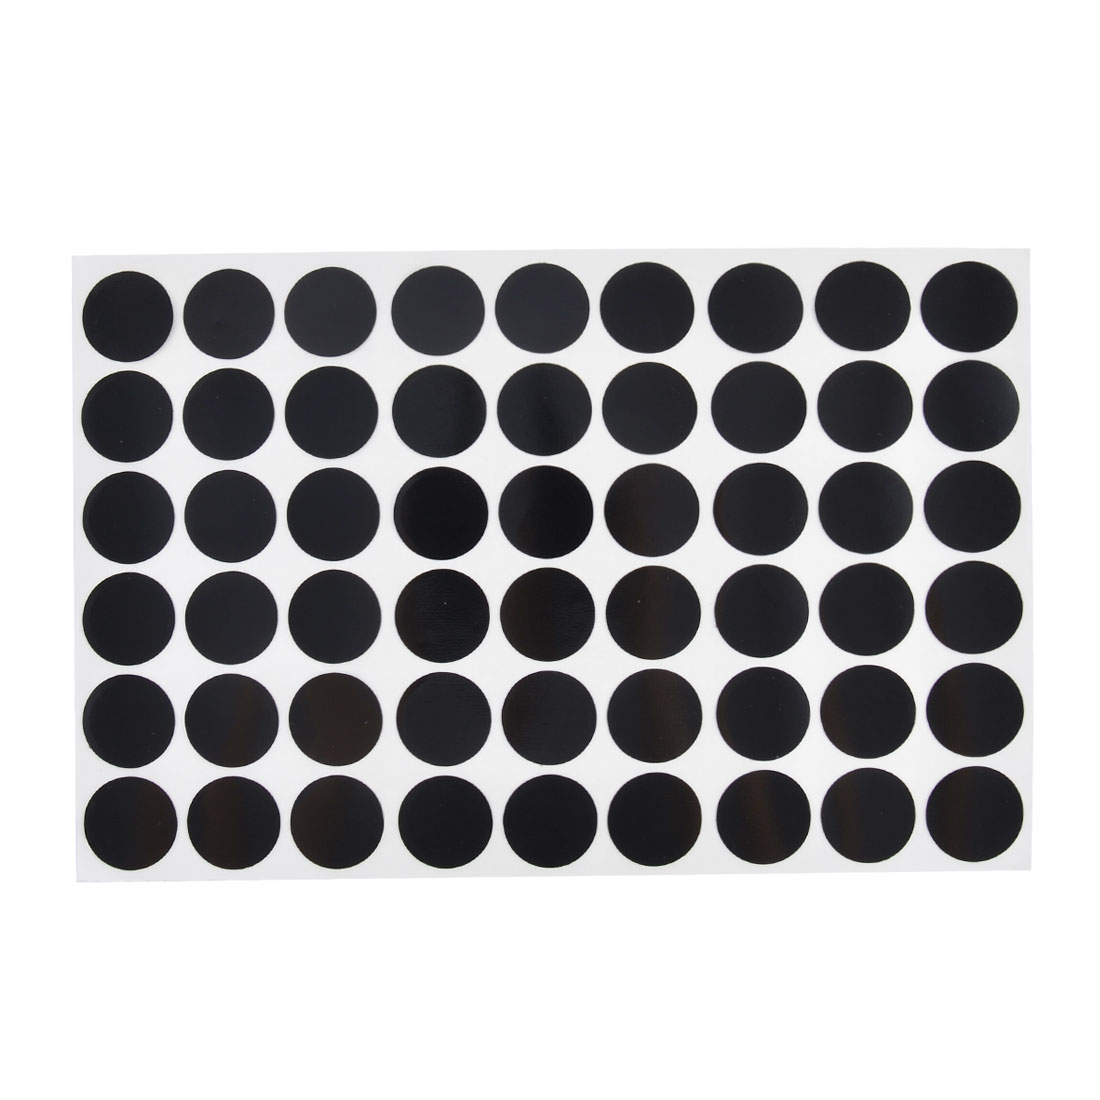 Furniture Self-adhesive Screw Hole Stickers Covers on One Sheet Black 54 in 1